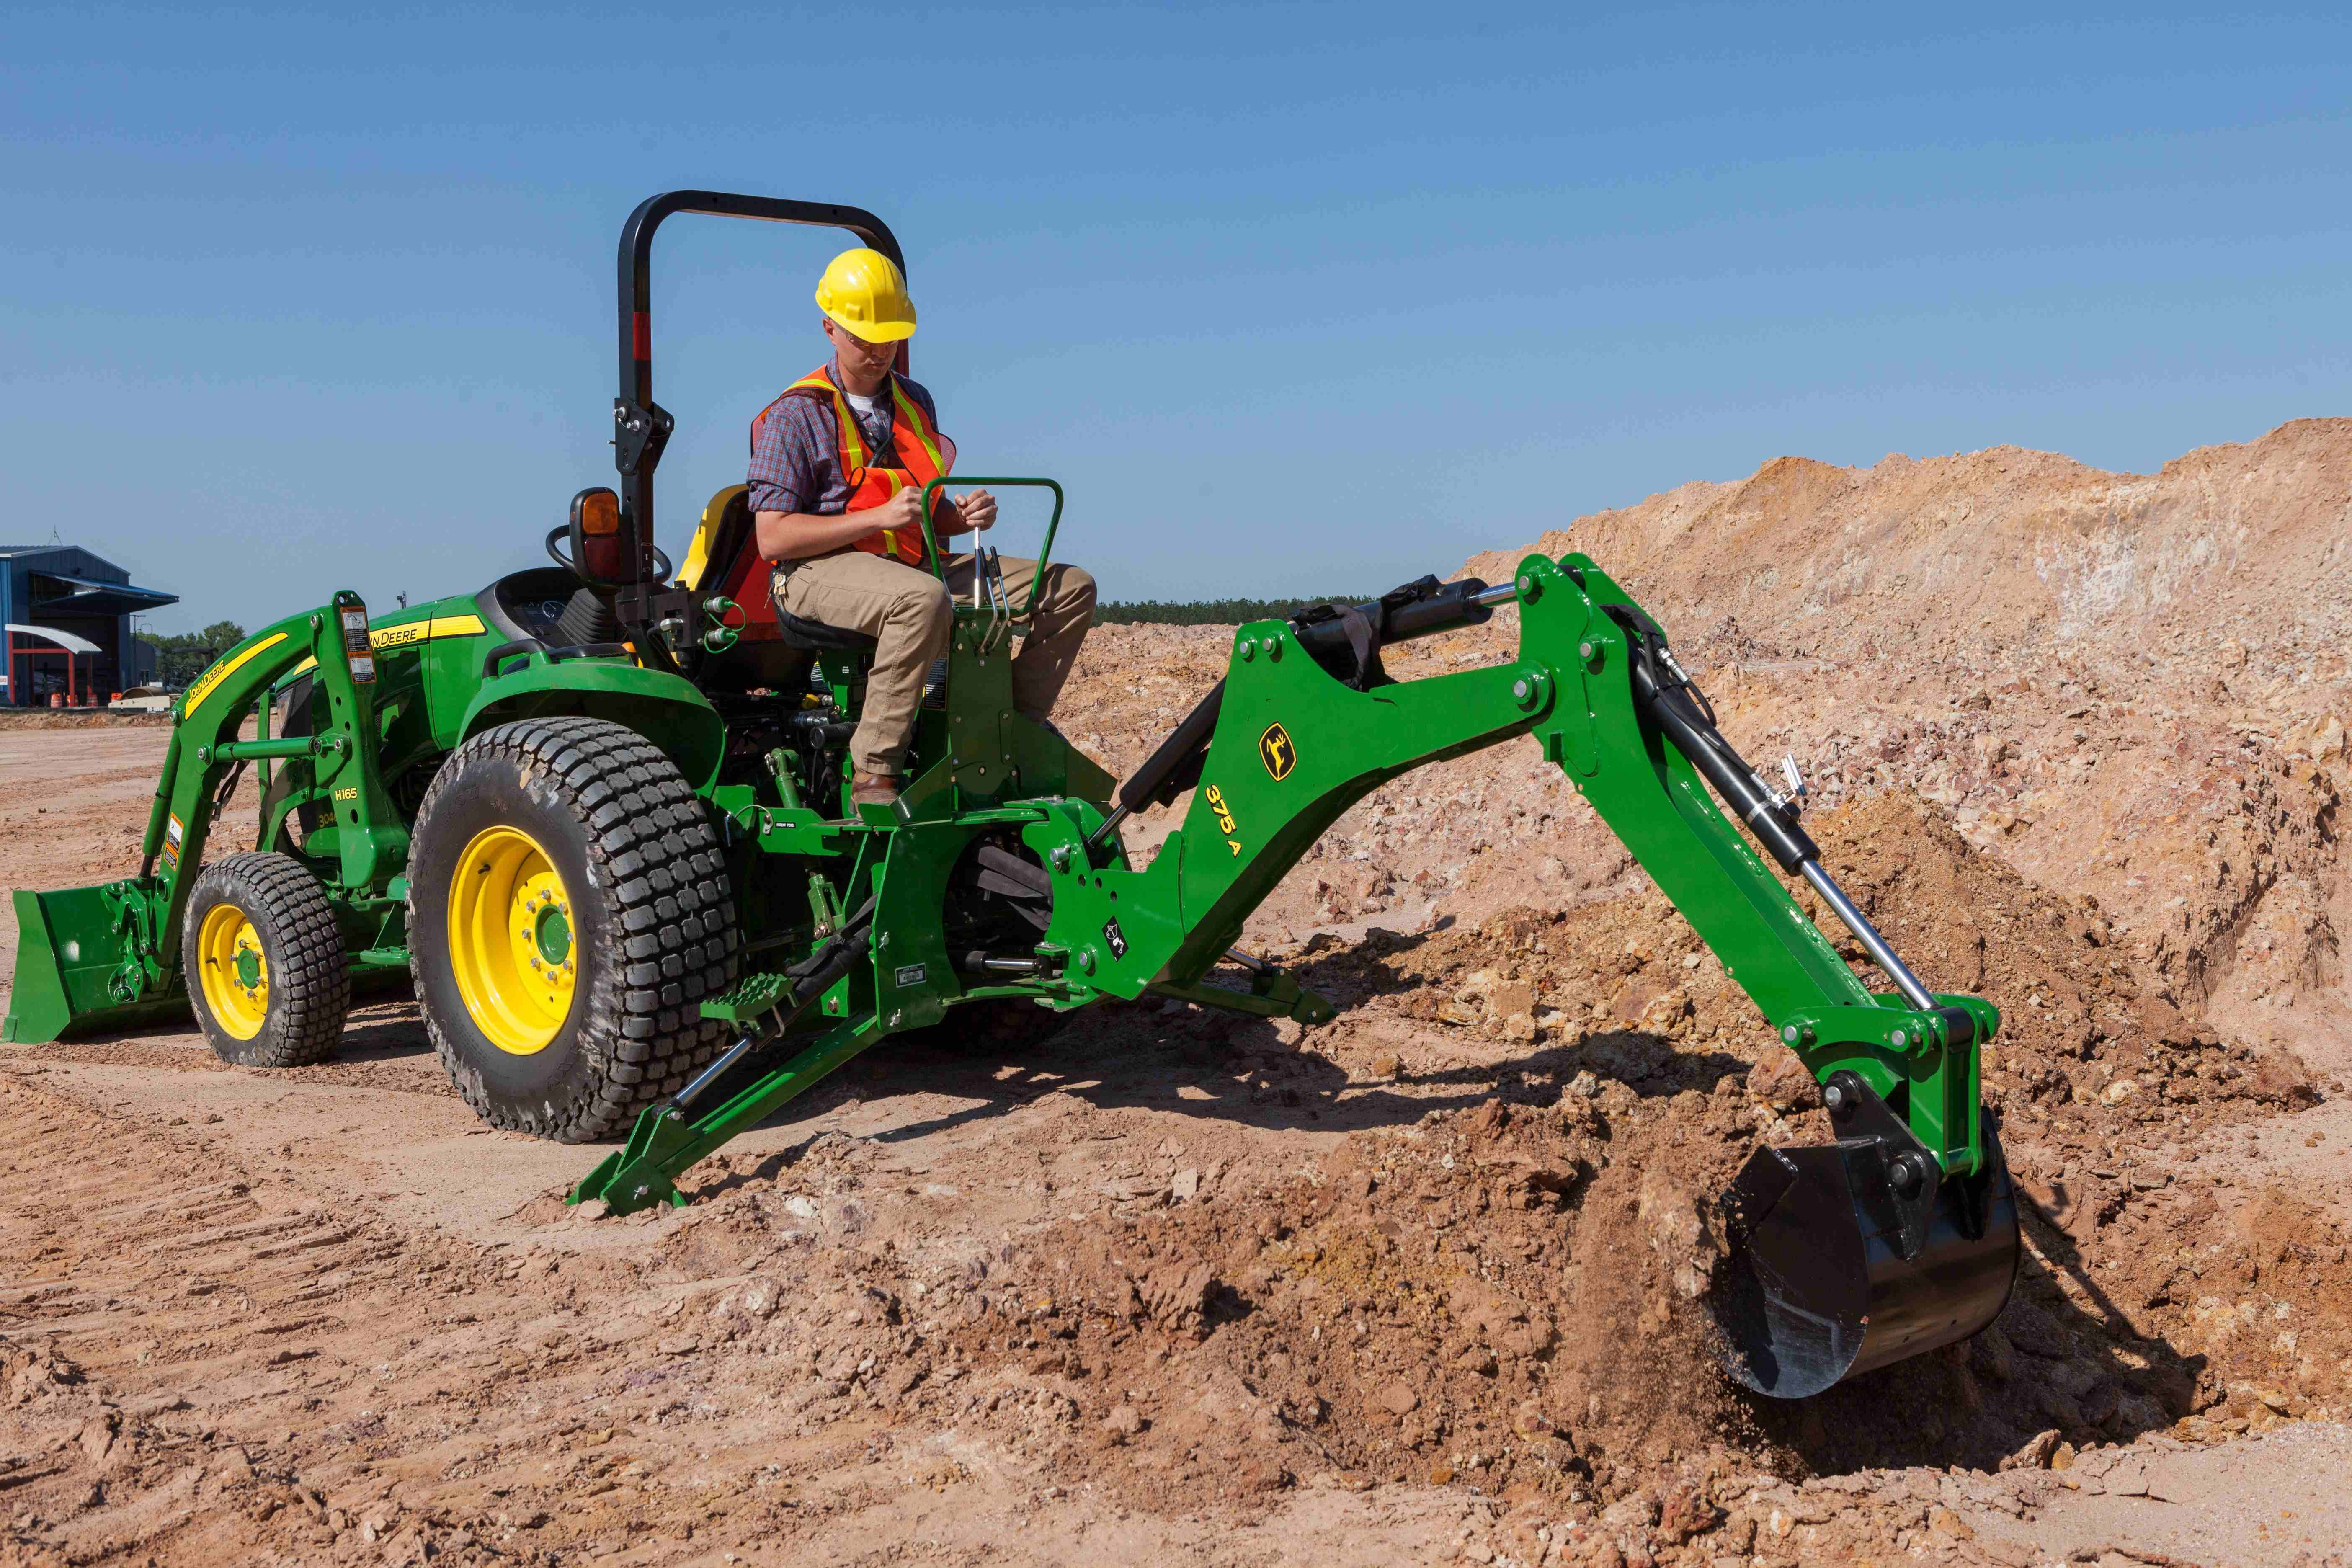 Best ideas about John Deere Landscape Supplies . Save or Pin John Deere Intros 6 pact Utility Tractors Now.